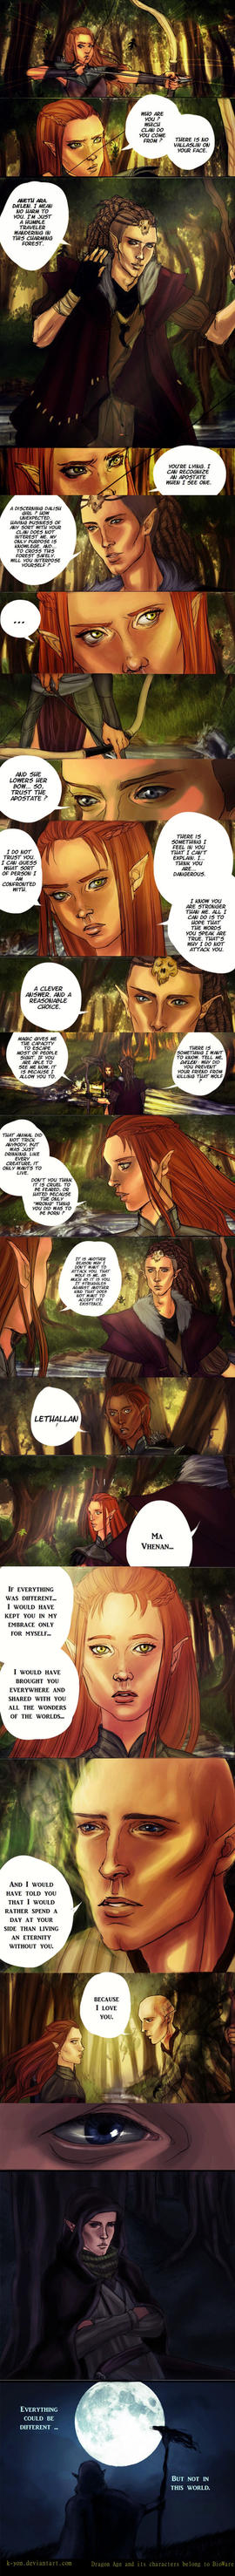 DAI - But not in this world 2 [SPOILERS] by K-yon